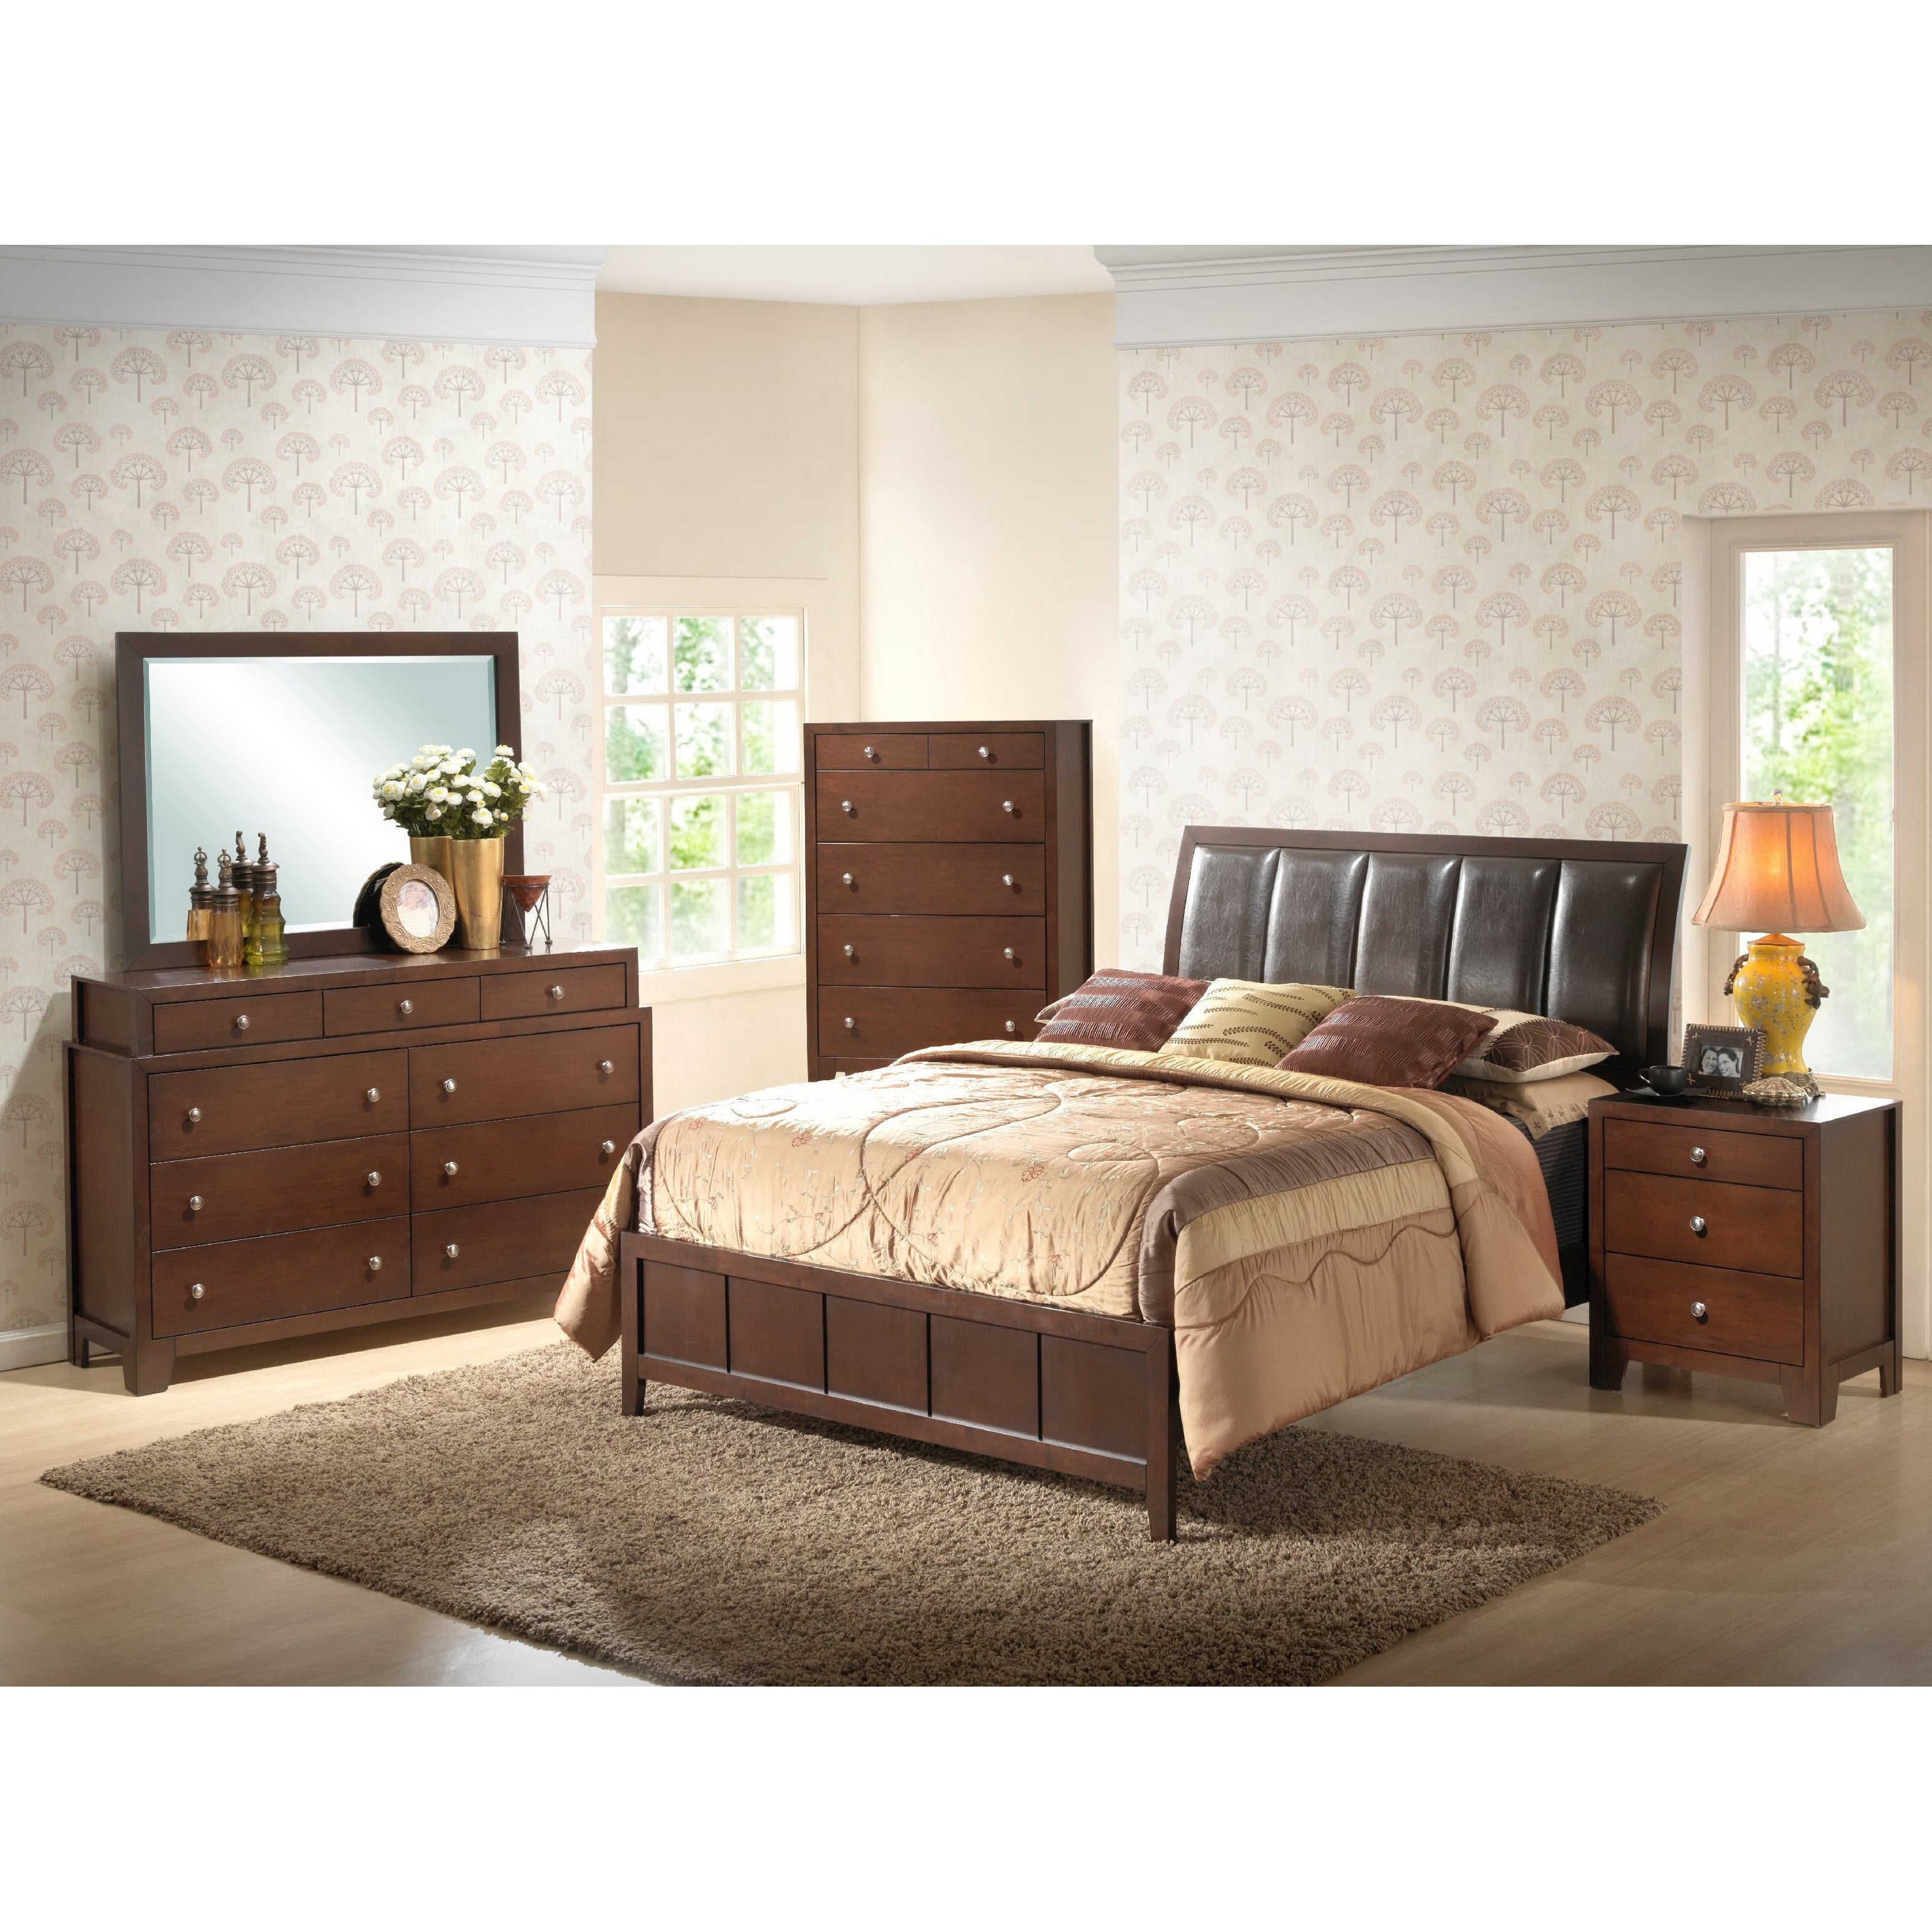 Butler 5 Piece King Size Brown Modern Bedroom Set Free Shipping Today 14298997